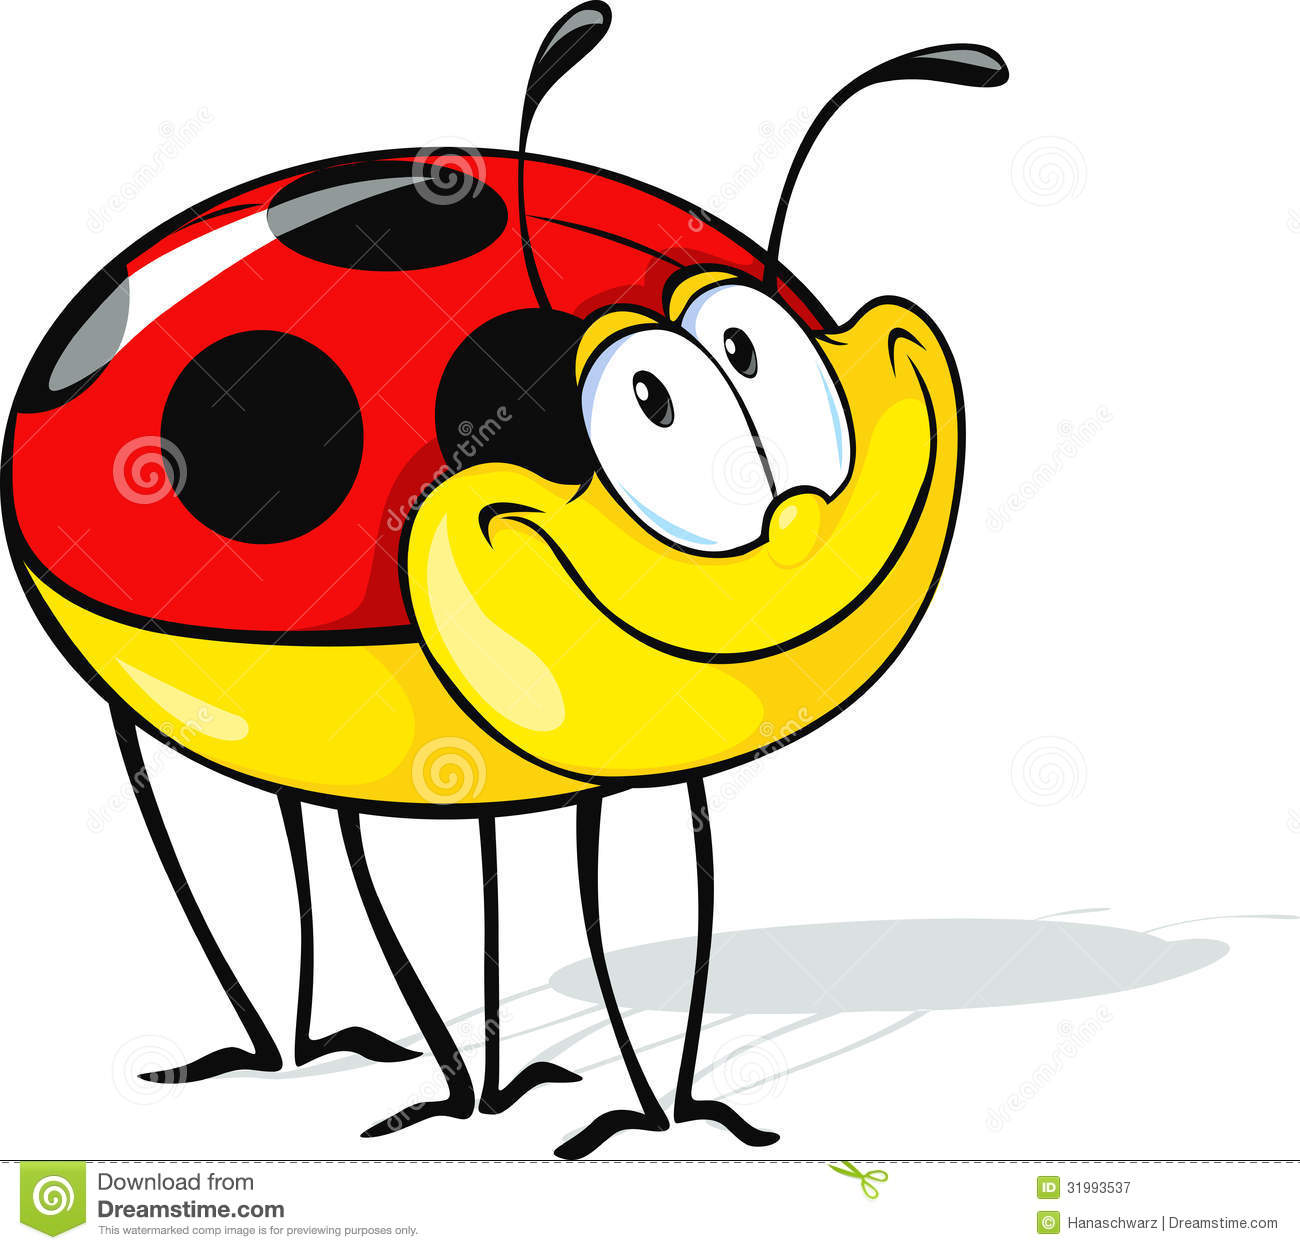 Funny Ladybug Cartoon Royalty Free Stock Photography   Image  31993537